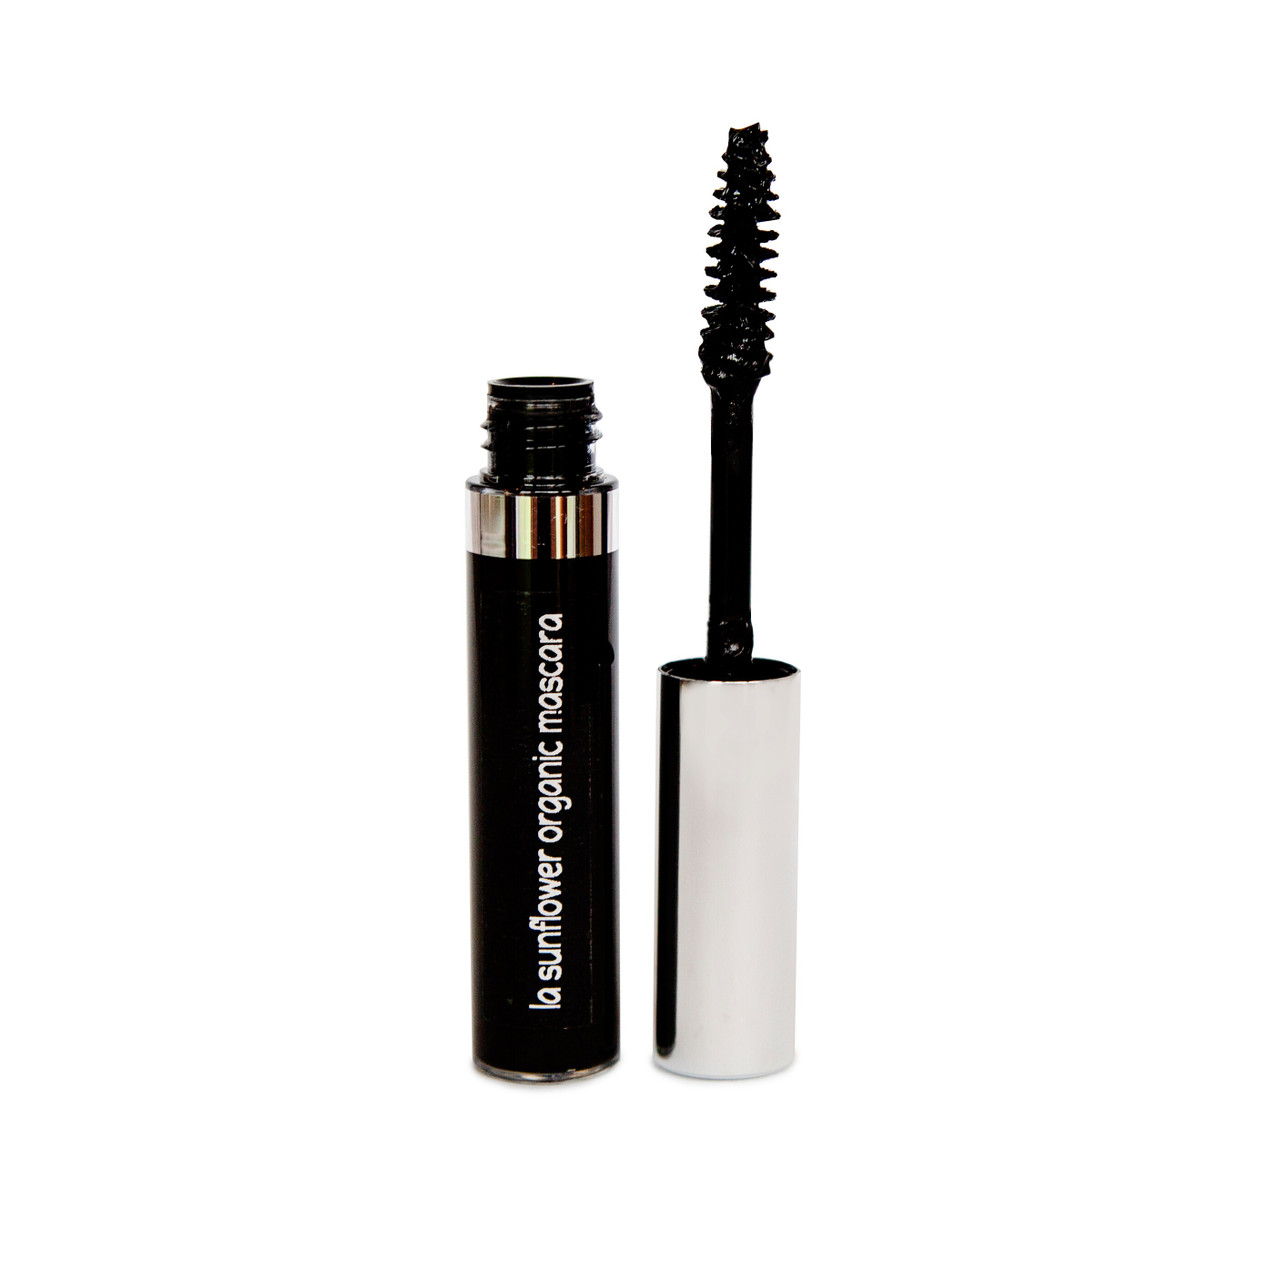 Organic Soft-Black Mascara: Simply Stunning & Perfectly Healthy